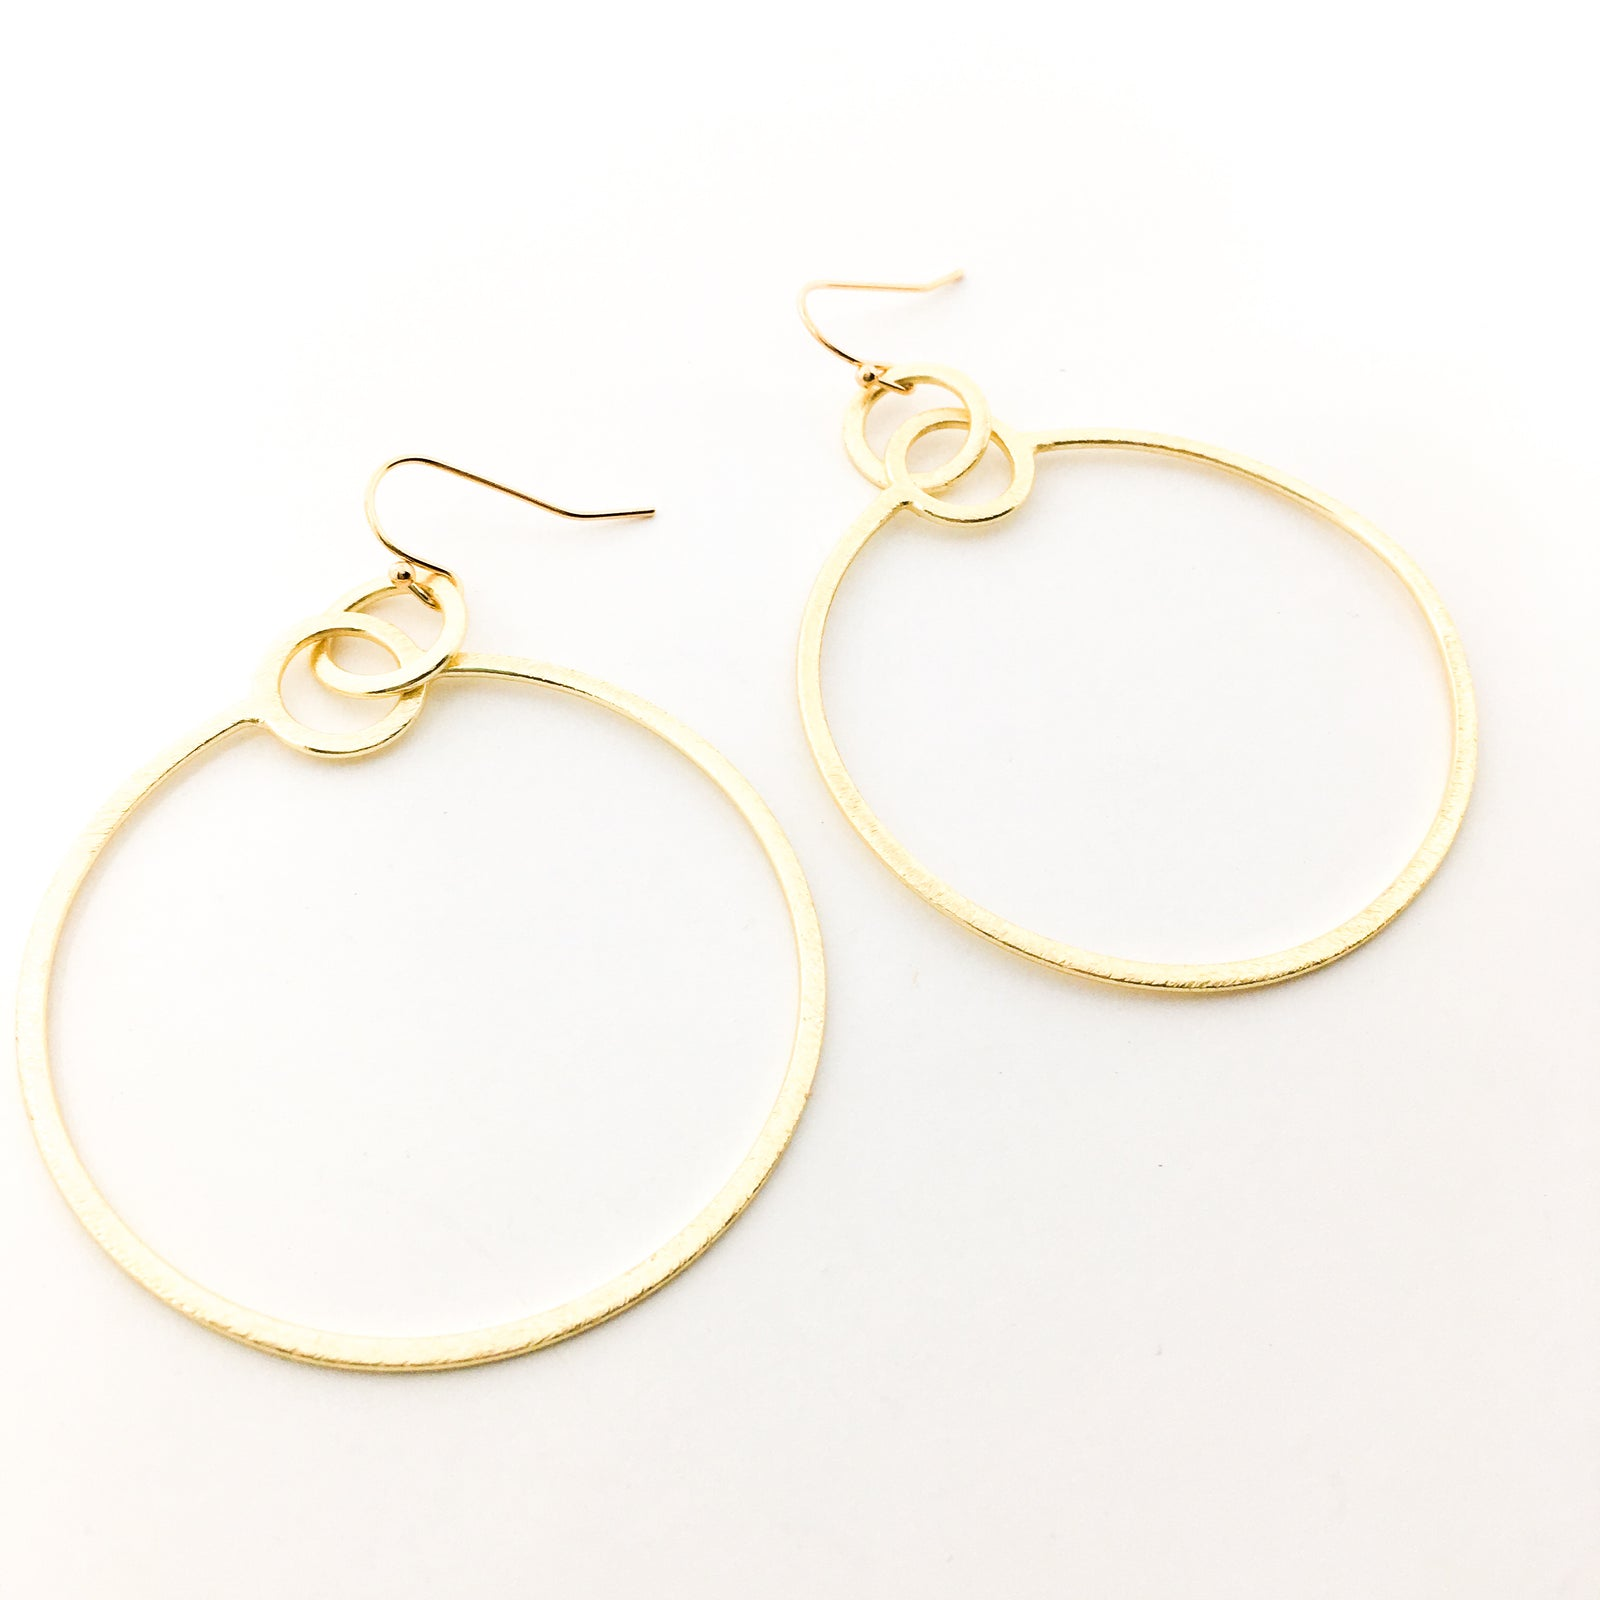 BRUSHED HANGING HOOPS EARRINGS | 14K GOLD-FILLED